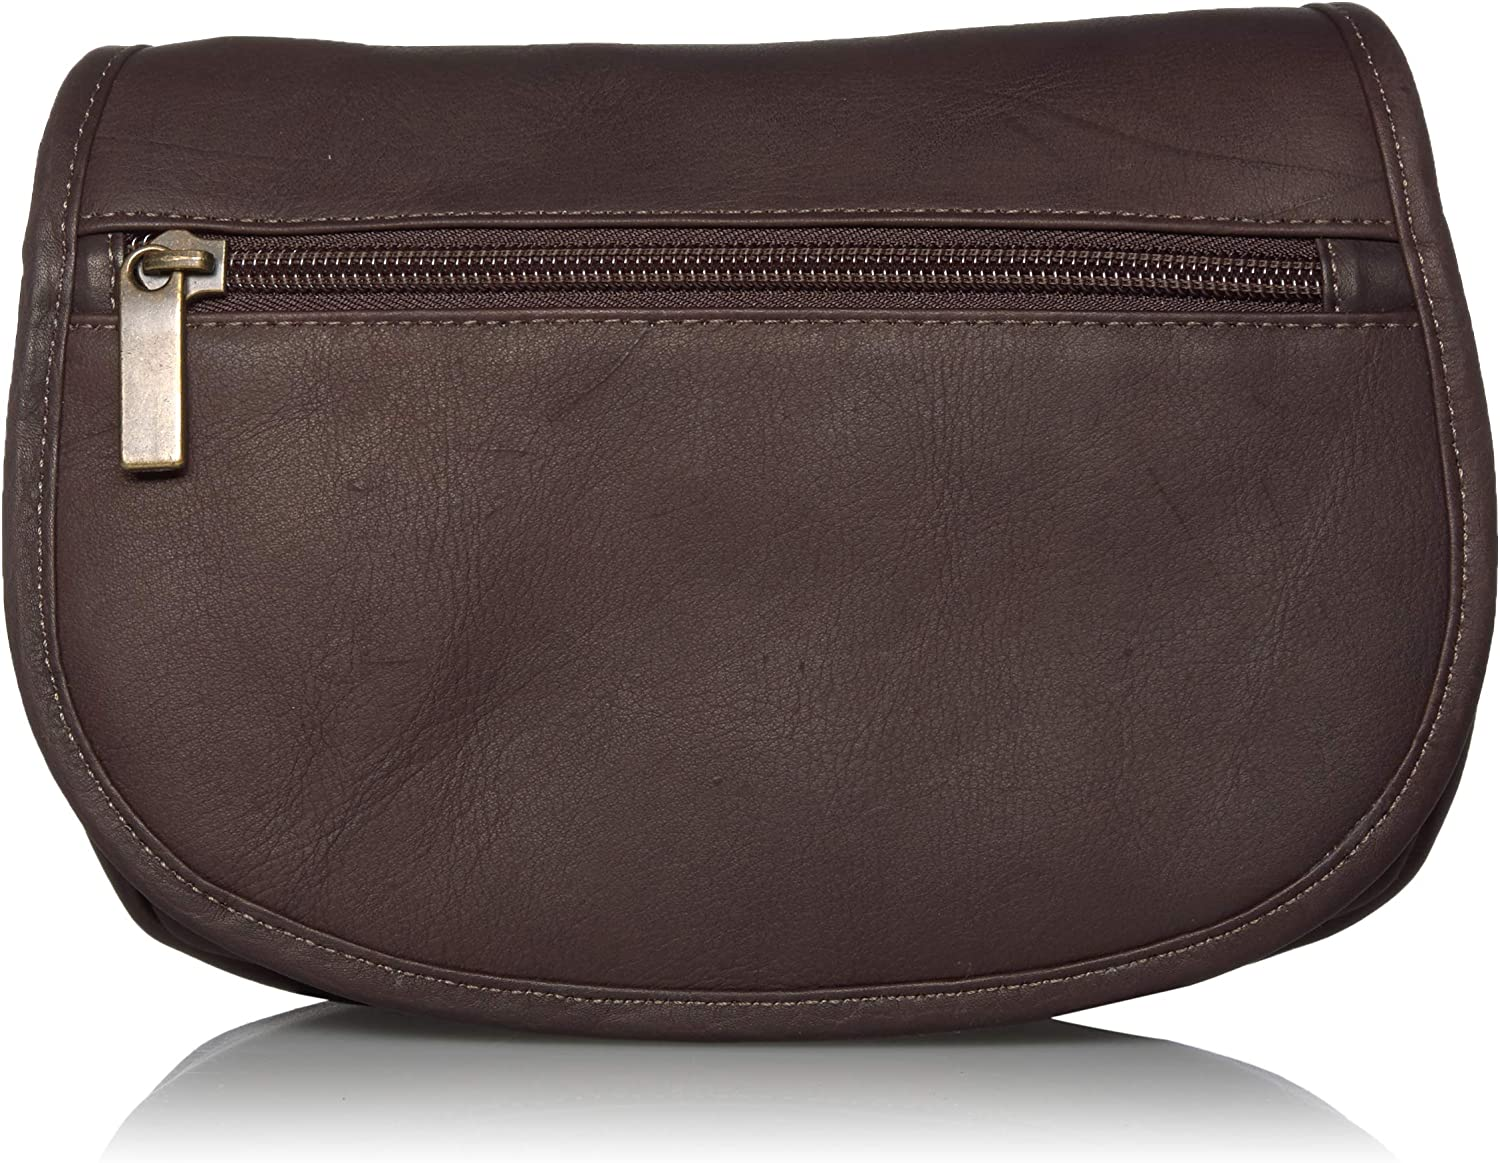 David King  Co. Flap Over Waist Pack, Cafe, One Size